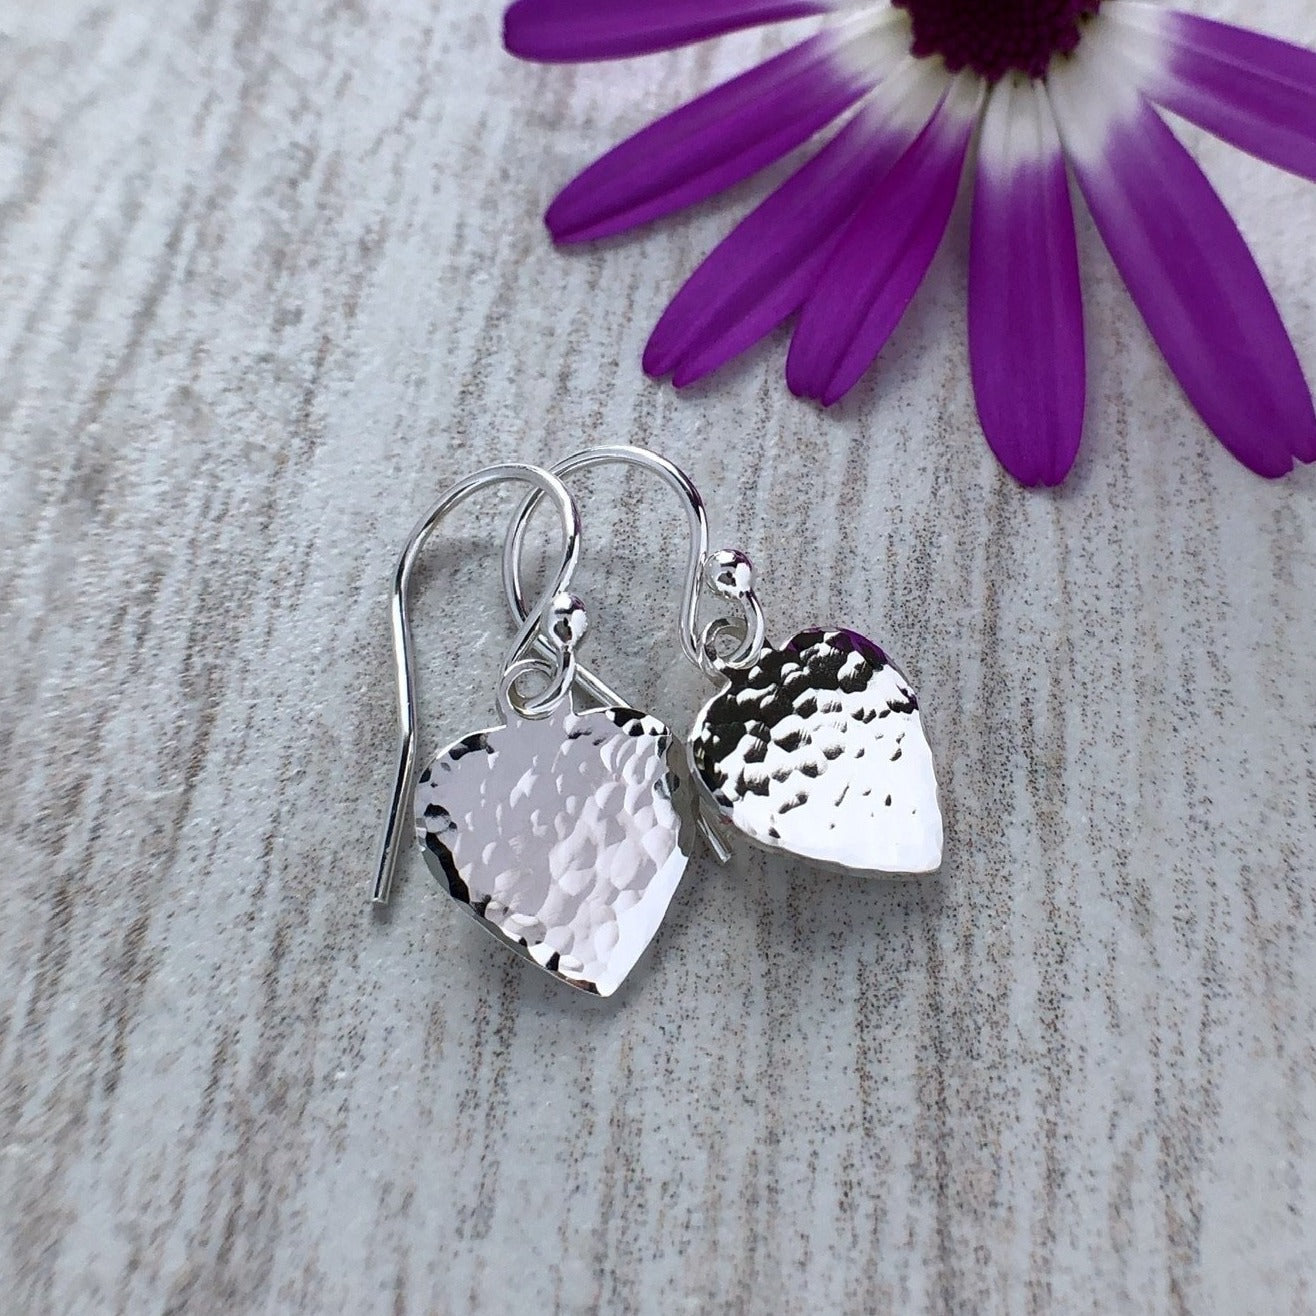 small sterling silver heart earrings with a hammered finish